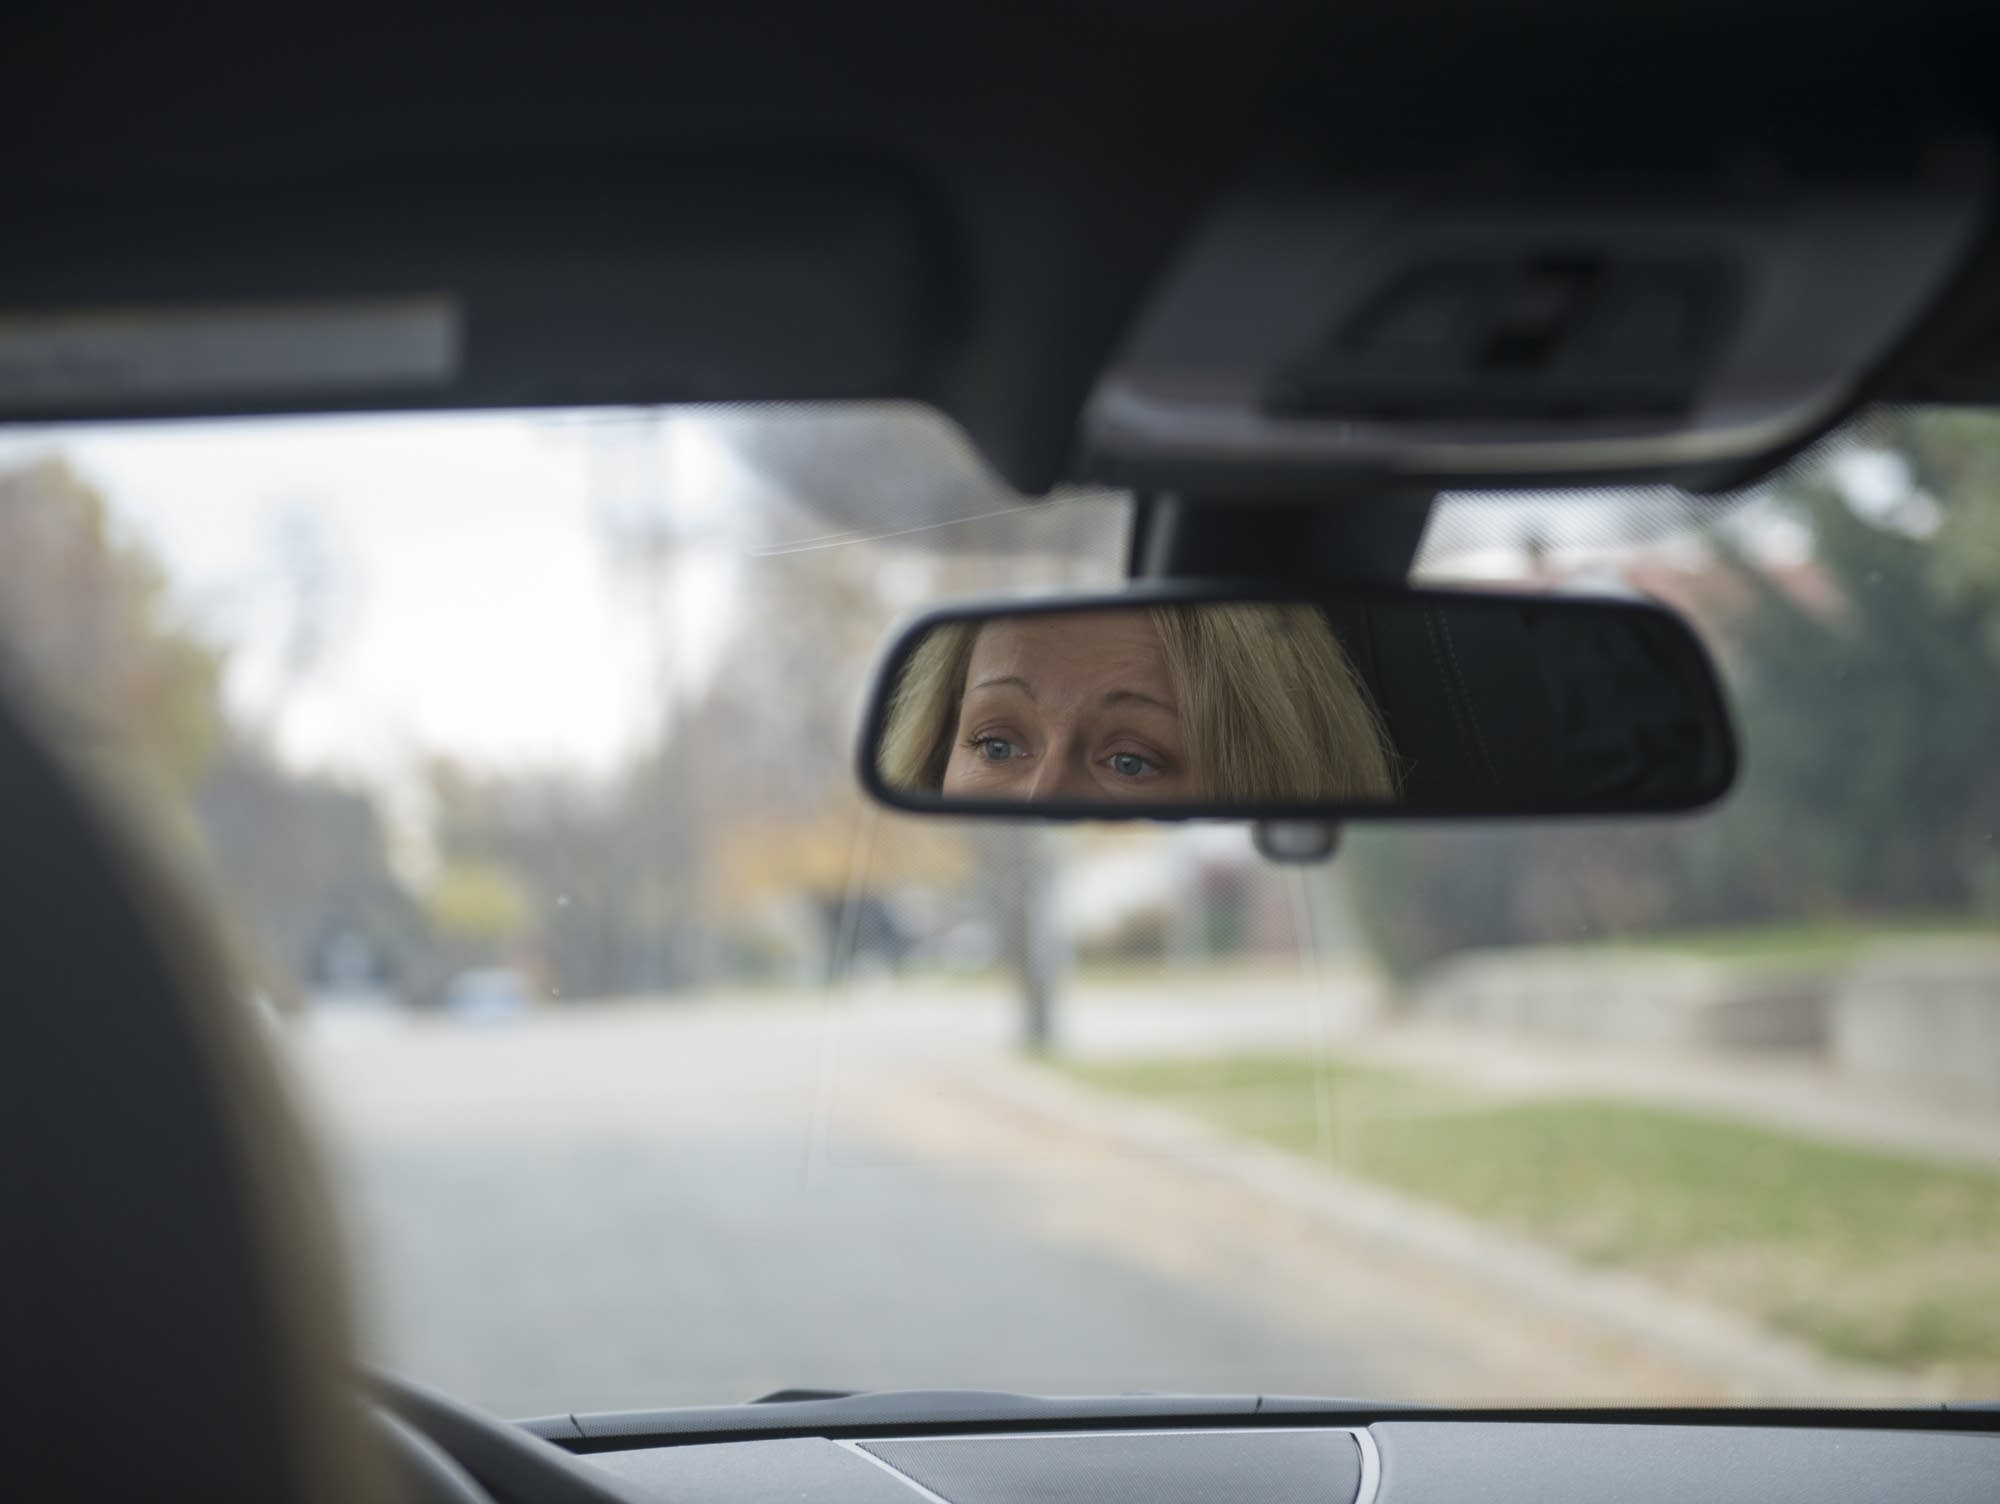 Heather Edelson's reflection is seen in the rearview while she drives.